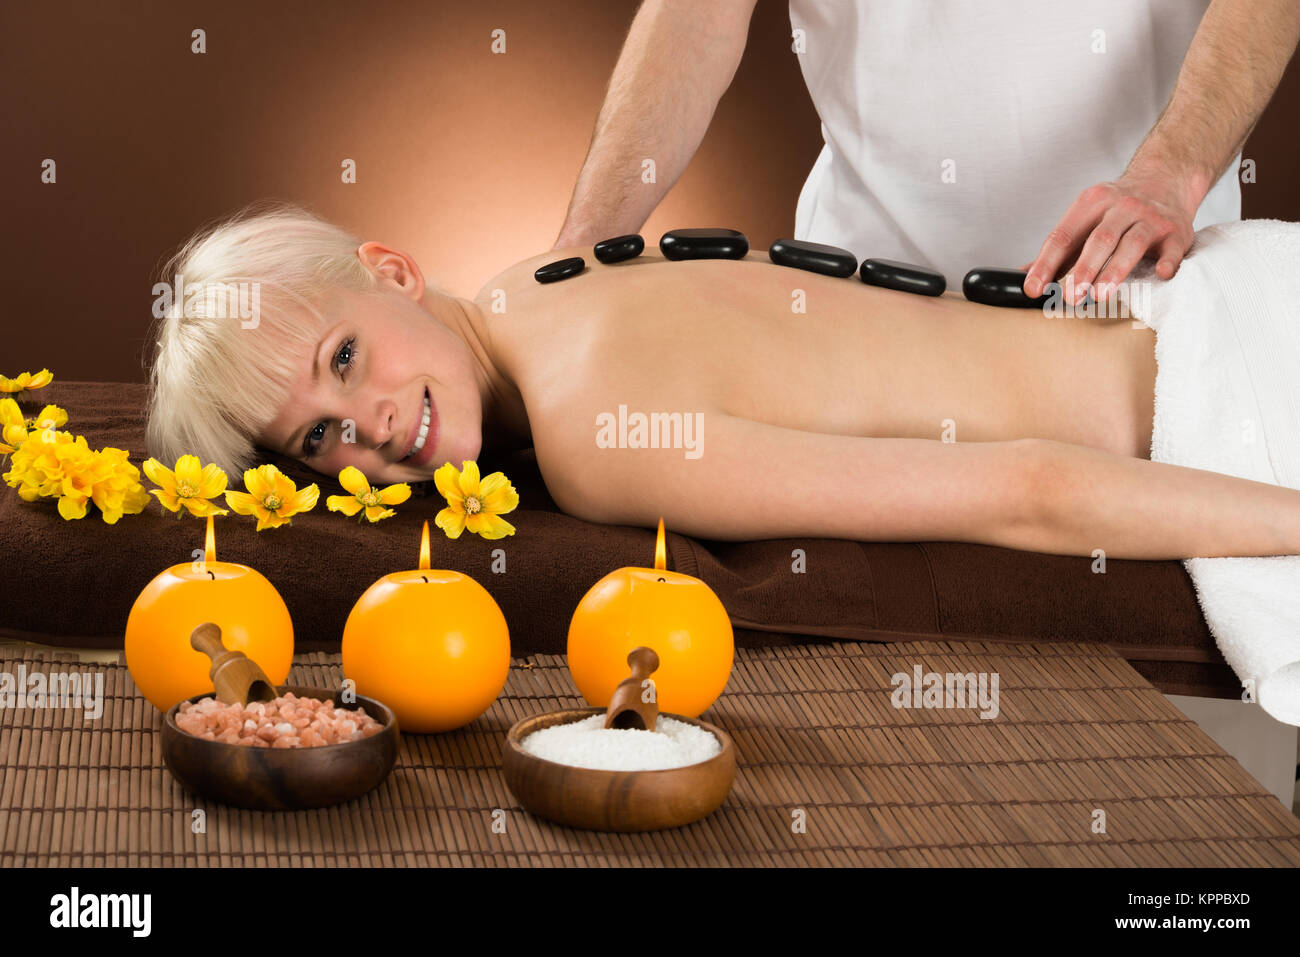 Young Woman Receiving Hot Stone Therapy - Stock Image